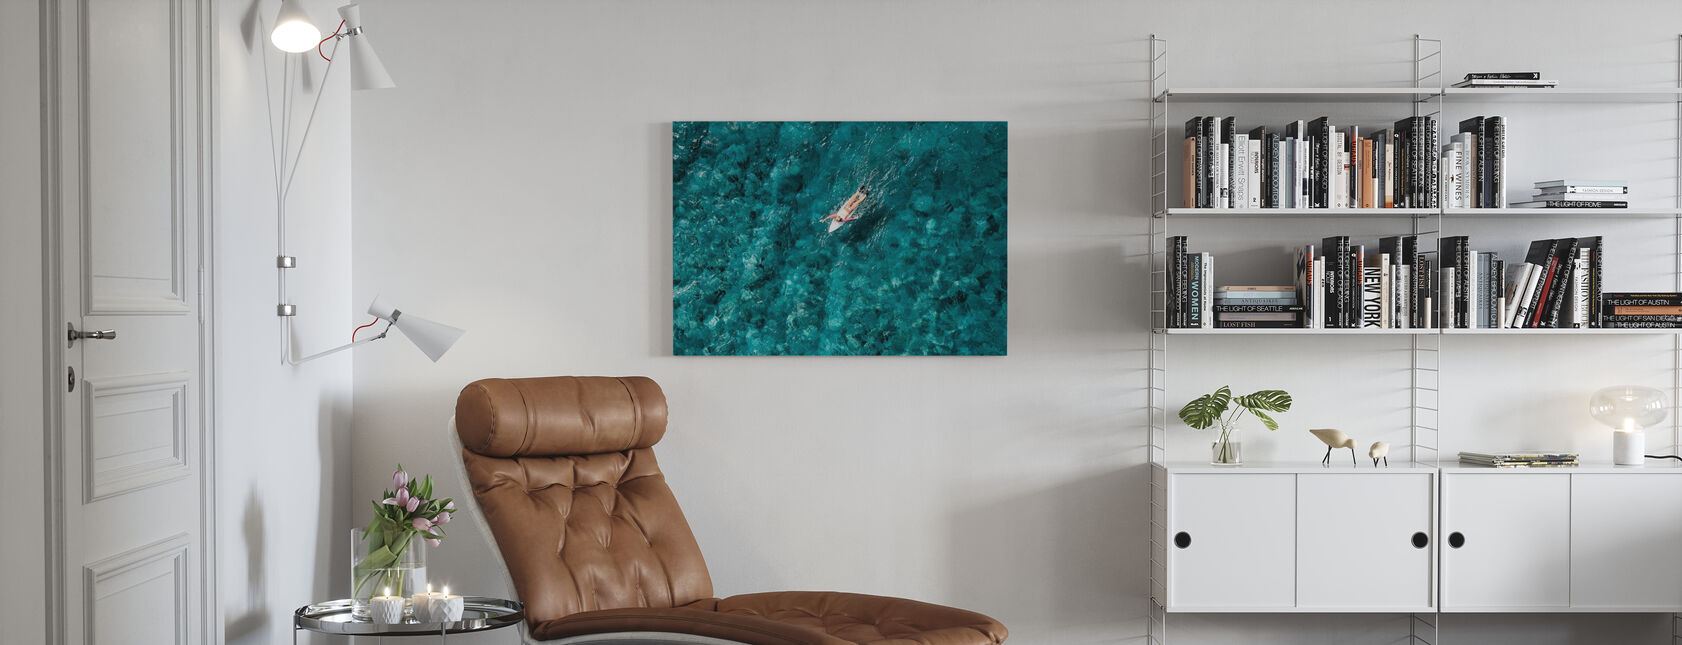 Surf Paddling in the Sea - Canvas print - Living Room